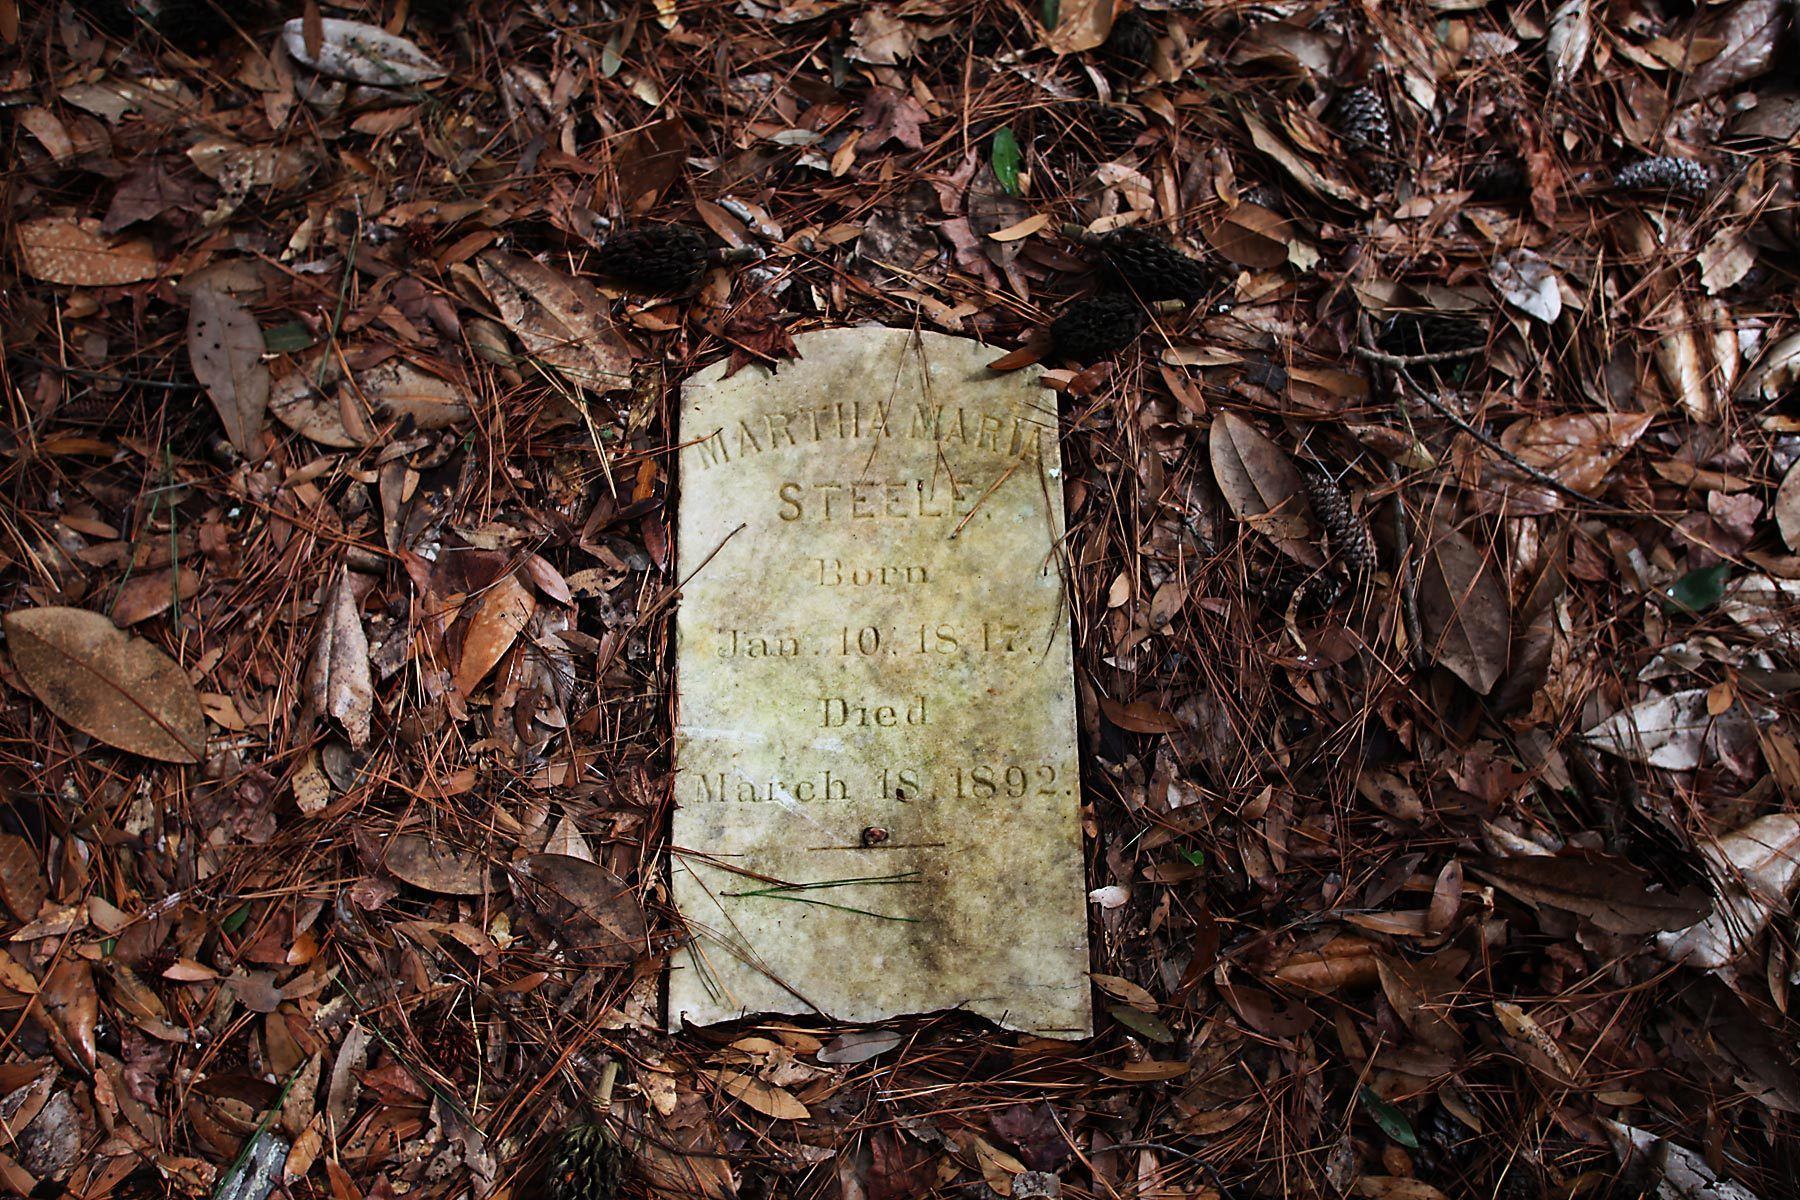 The gravestone of Martha Maria Steele, who died in 1892, is framed in fallen leaves and brush at the slave cemetery February 17, 2012, at Friendfield Plantation in Georgetown, S.C. The cemetery is located in an open area near the marsh and about a quarter mile from the old slave quarters on the plantation. The plantation contains 3264 acres of land and has a selling price of $20 million. In the South Carolina Lowcountry, more than a half-dozen antebellum plantations, which don't change hands often, are for sale.  REUTERS/Randall Hill